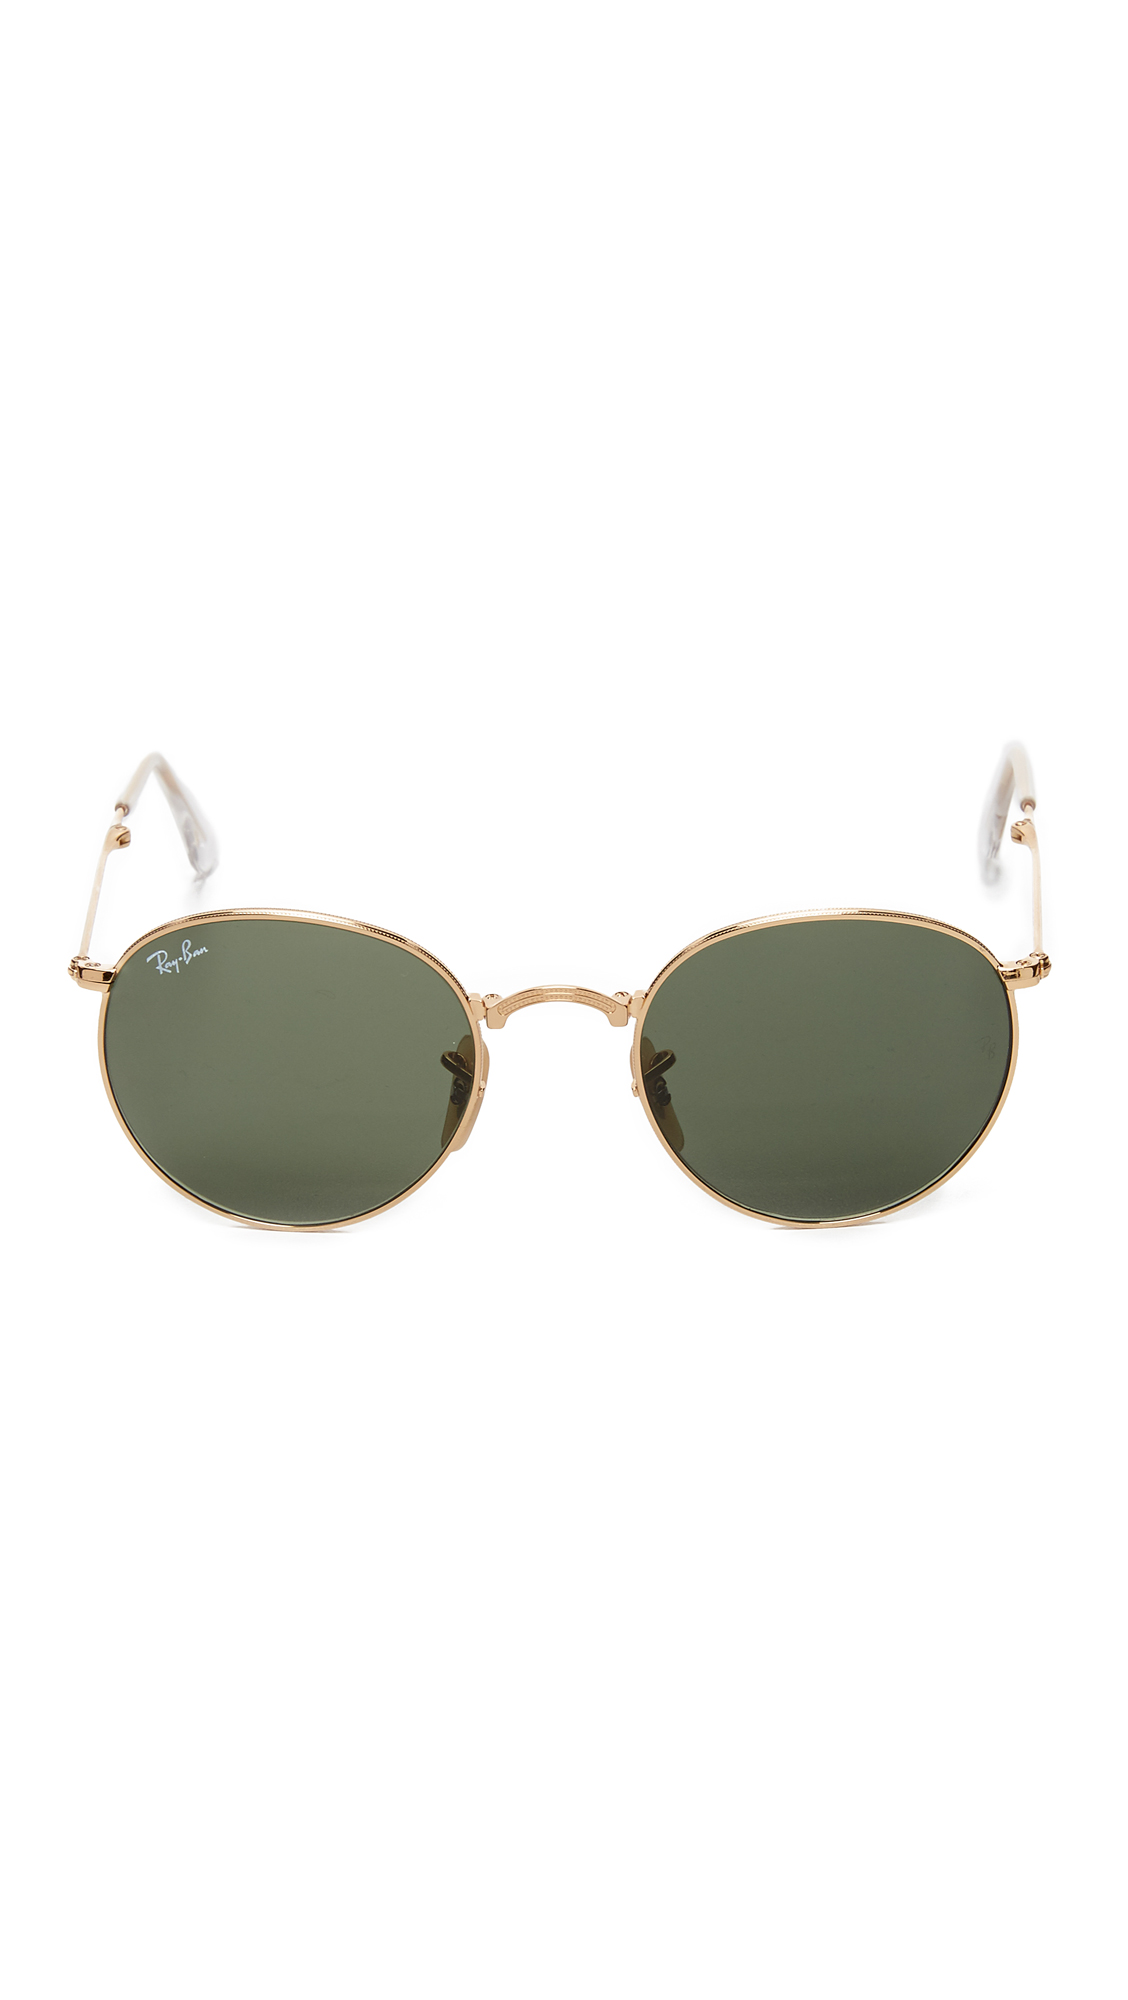 Ray-Ban RB3532 Icons Round Sunglasses  82e2af9b9fe6f